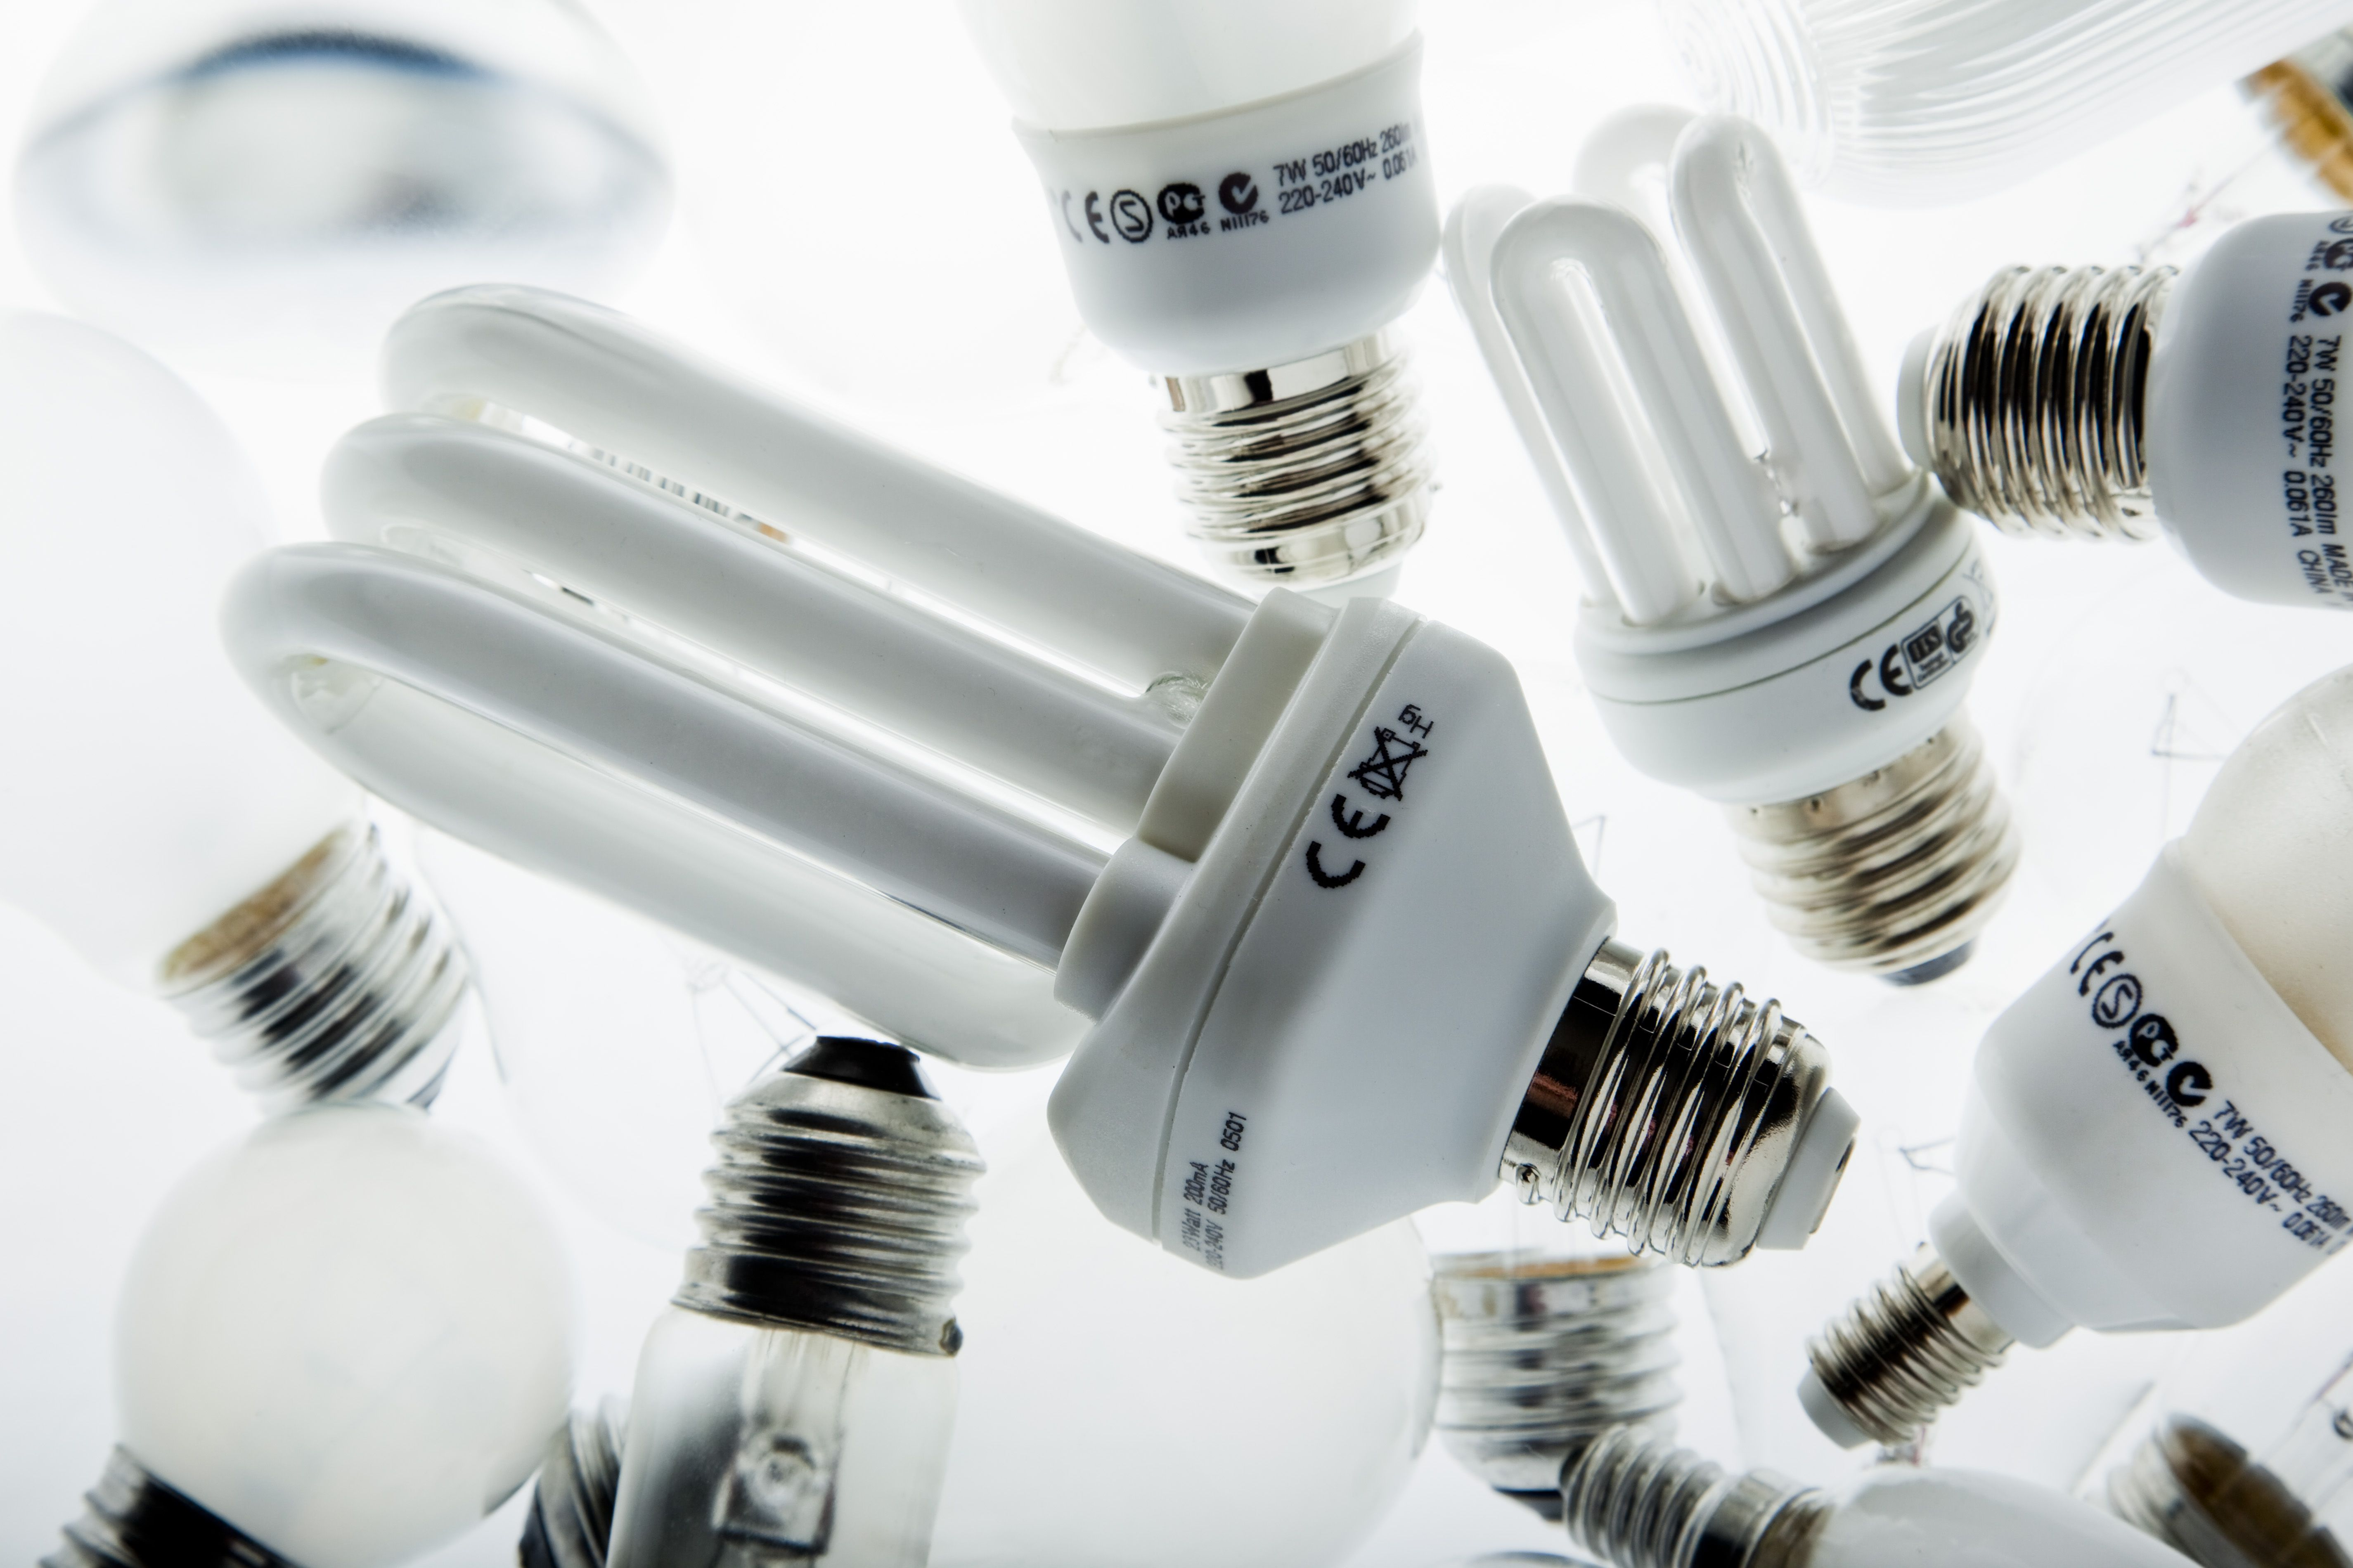 Low energy lamps and light bulbs